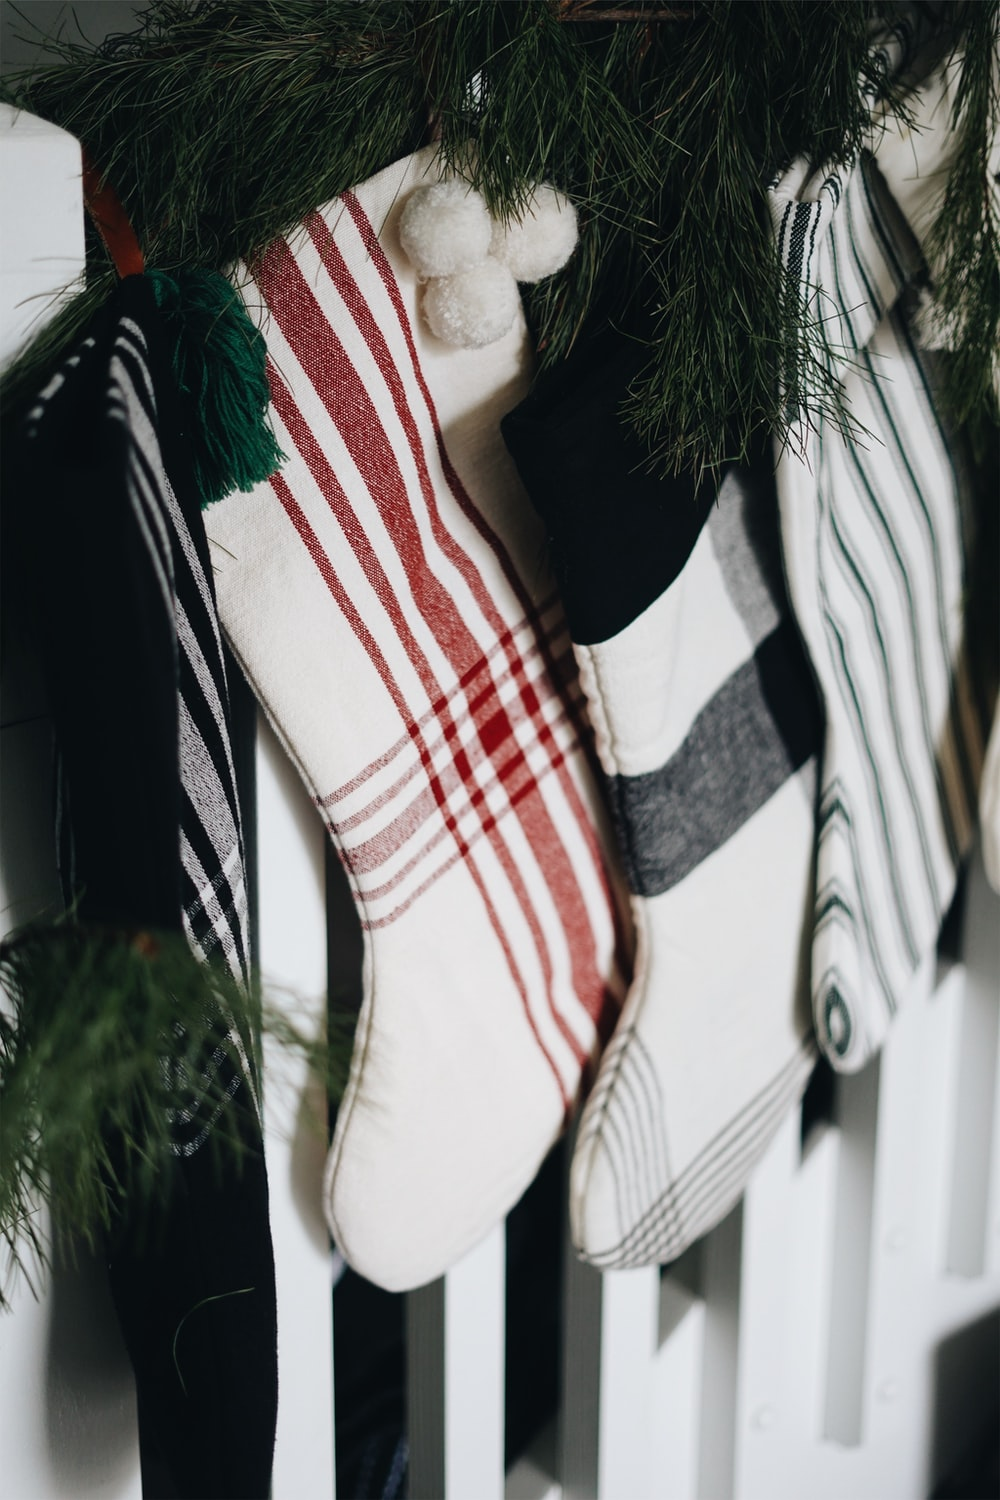 white and red Christmas stocking hanging near pine tree